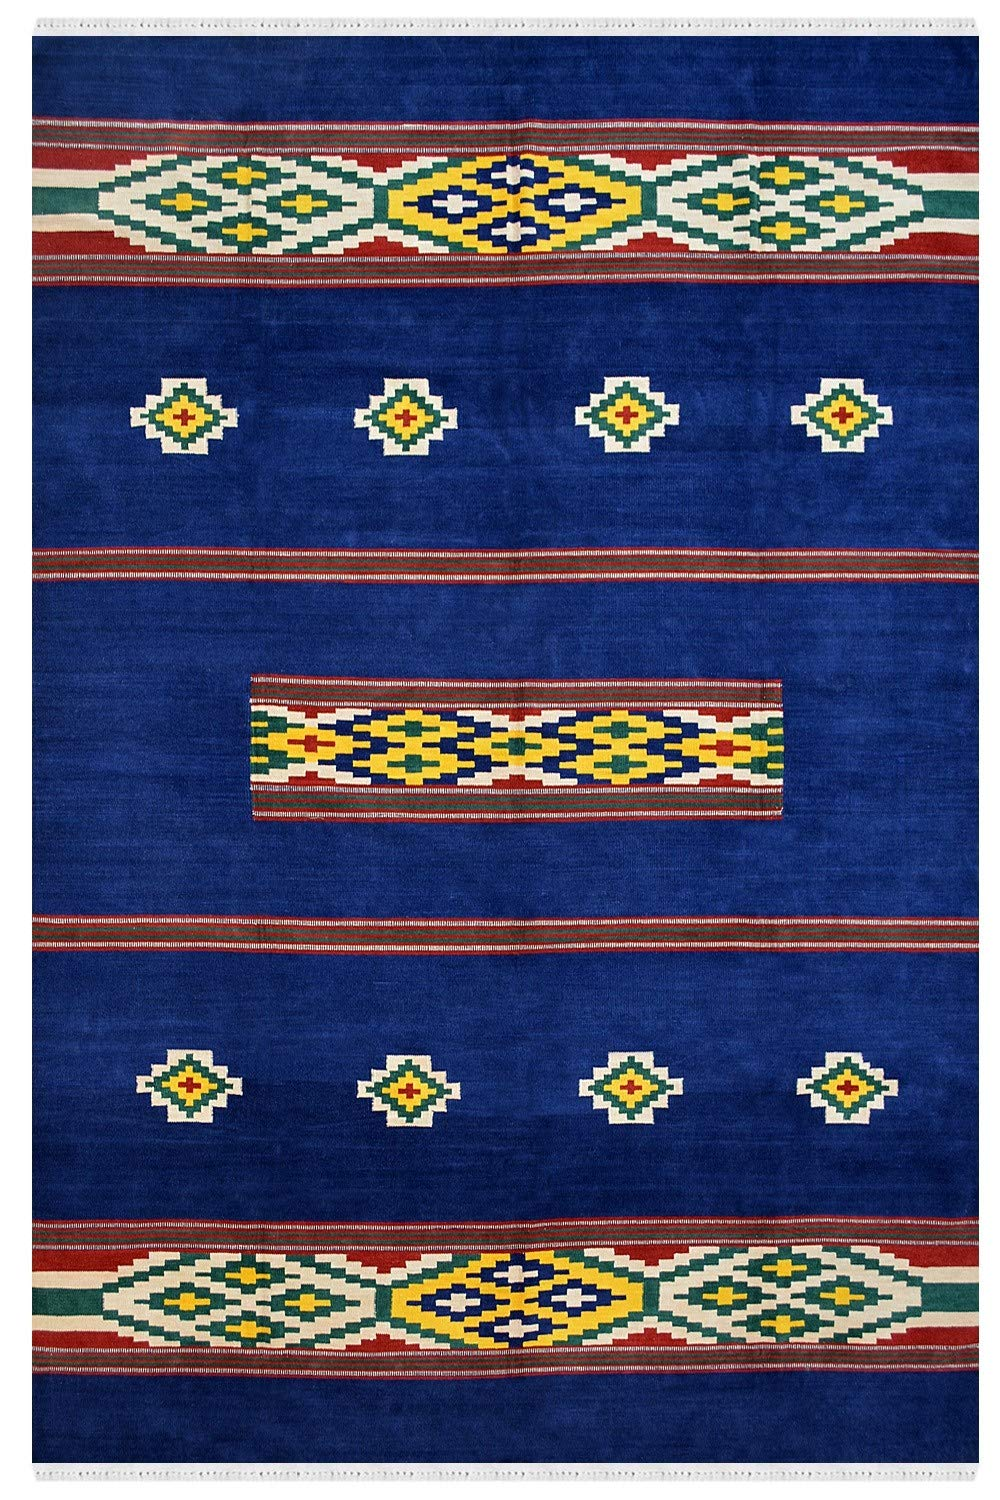 Rugs & Beyond Reversible Dhurry Flat-Woven Handmade Diamond Stripe Contemporary Design Dhurries Wool & Cotton Material Dark Blue Pink Color Long Lasting 100% Hand Washable (Blue, 7.1Ft by 10Ft)